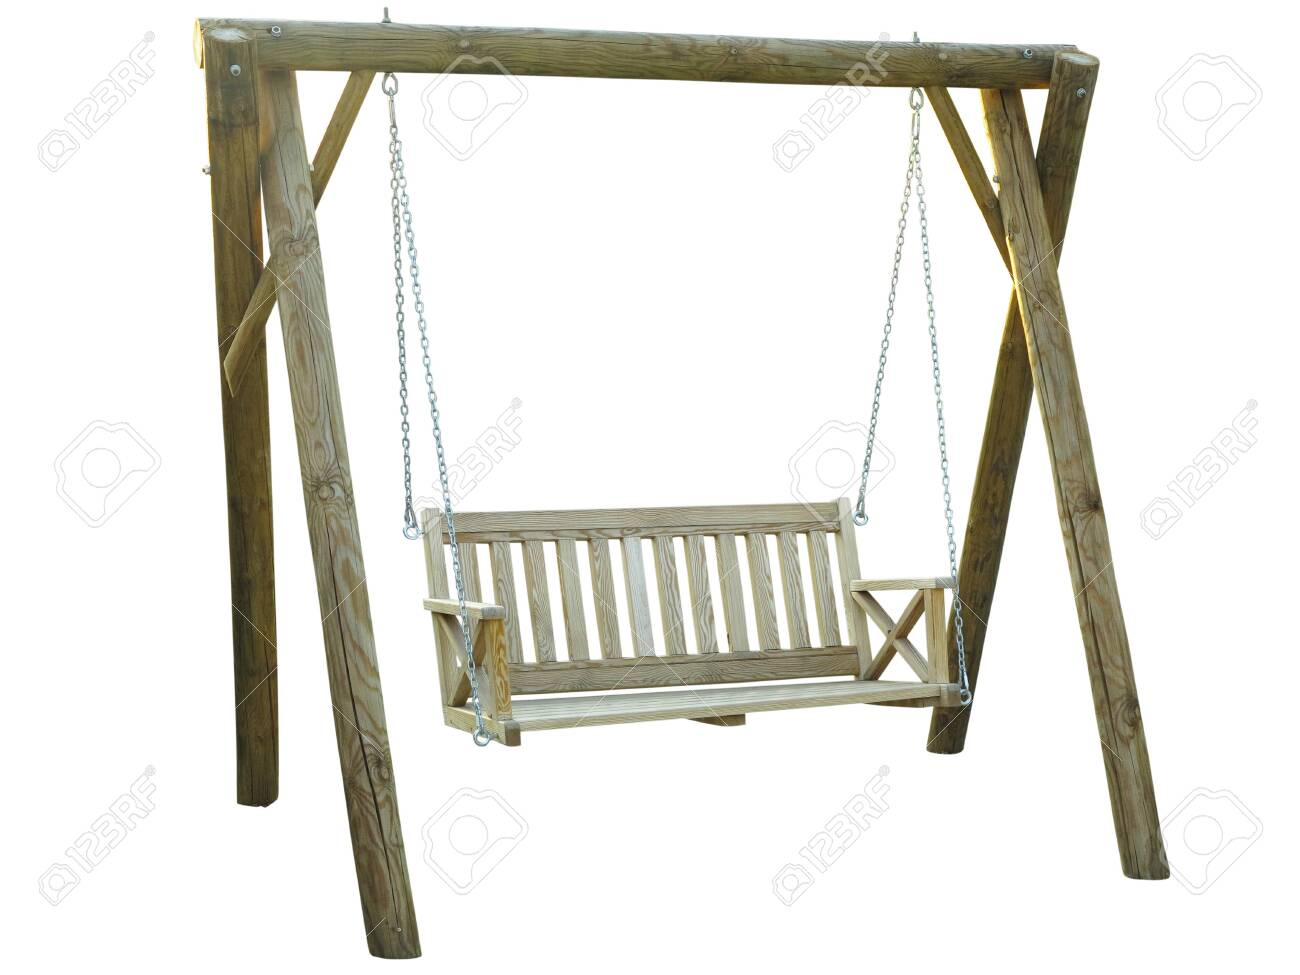 Picture of: Classic Wooden Outdoor Hanging Swing Bench Furniture Isolated Stock Photo Picture And Royalty Free Image Image 129646167